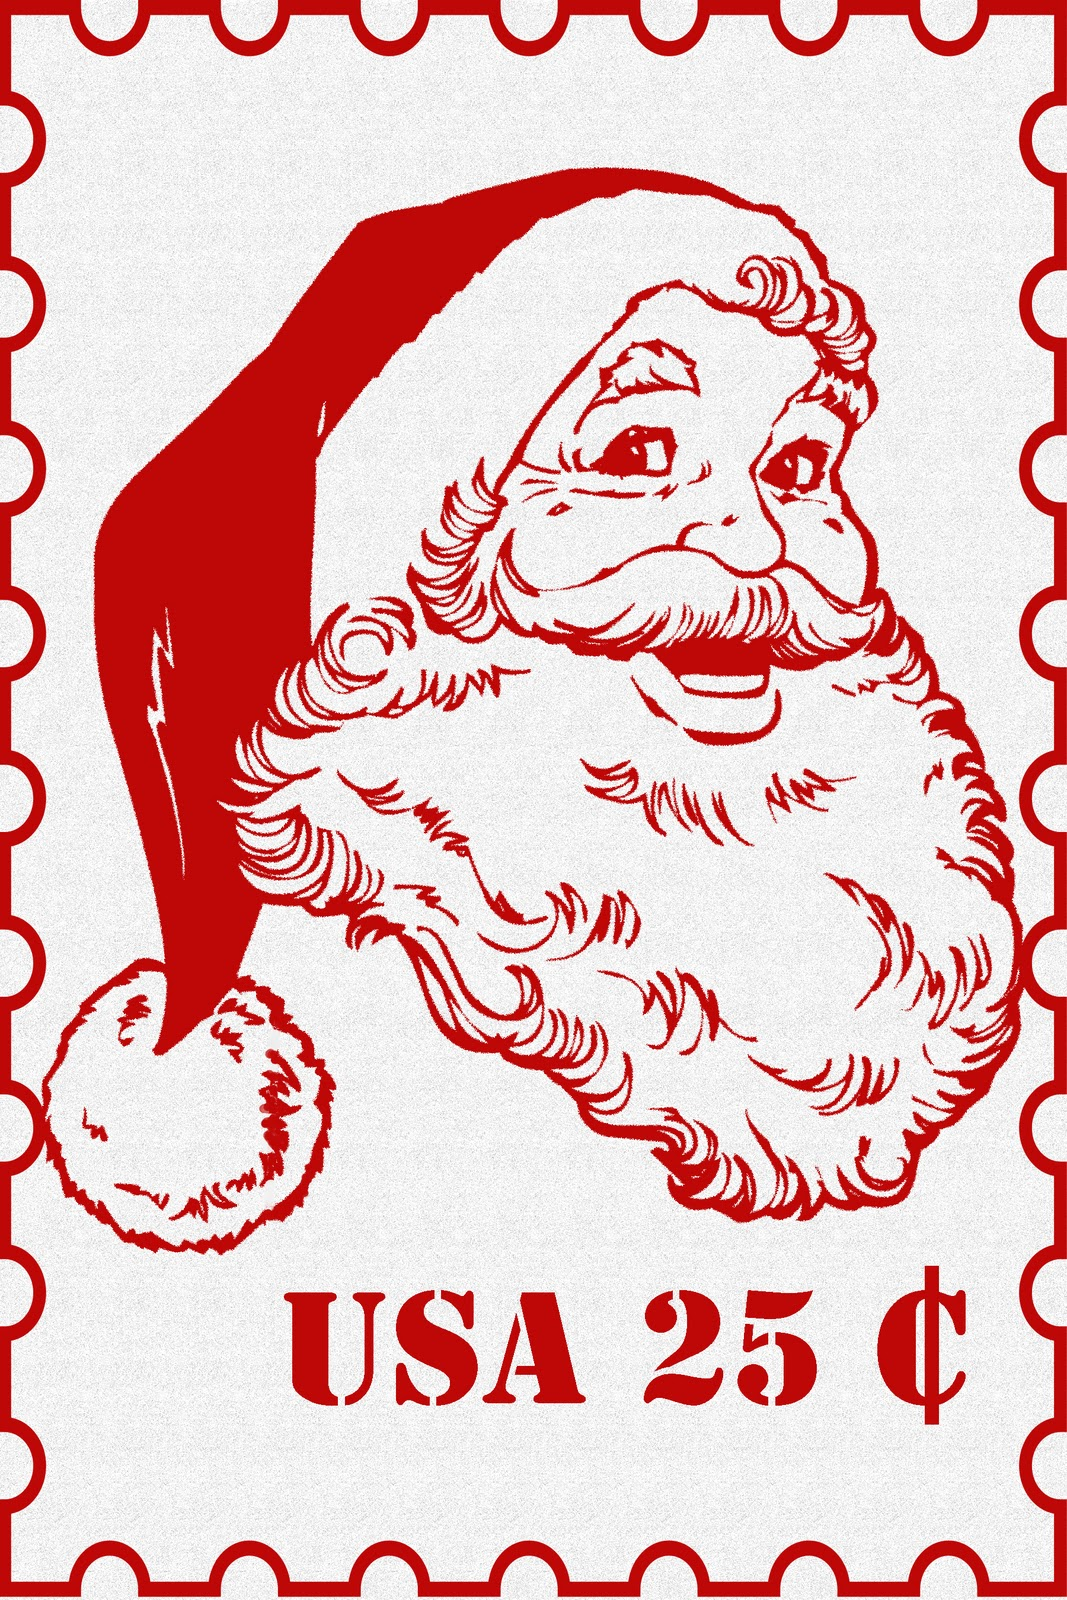 graphic about Stamp Printable named Basic Frugal Dwelling: Key Santa Postage Stamp Printable